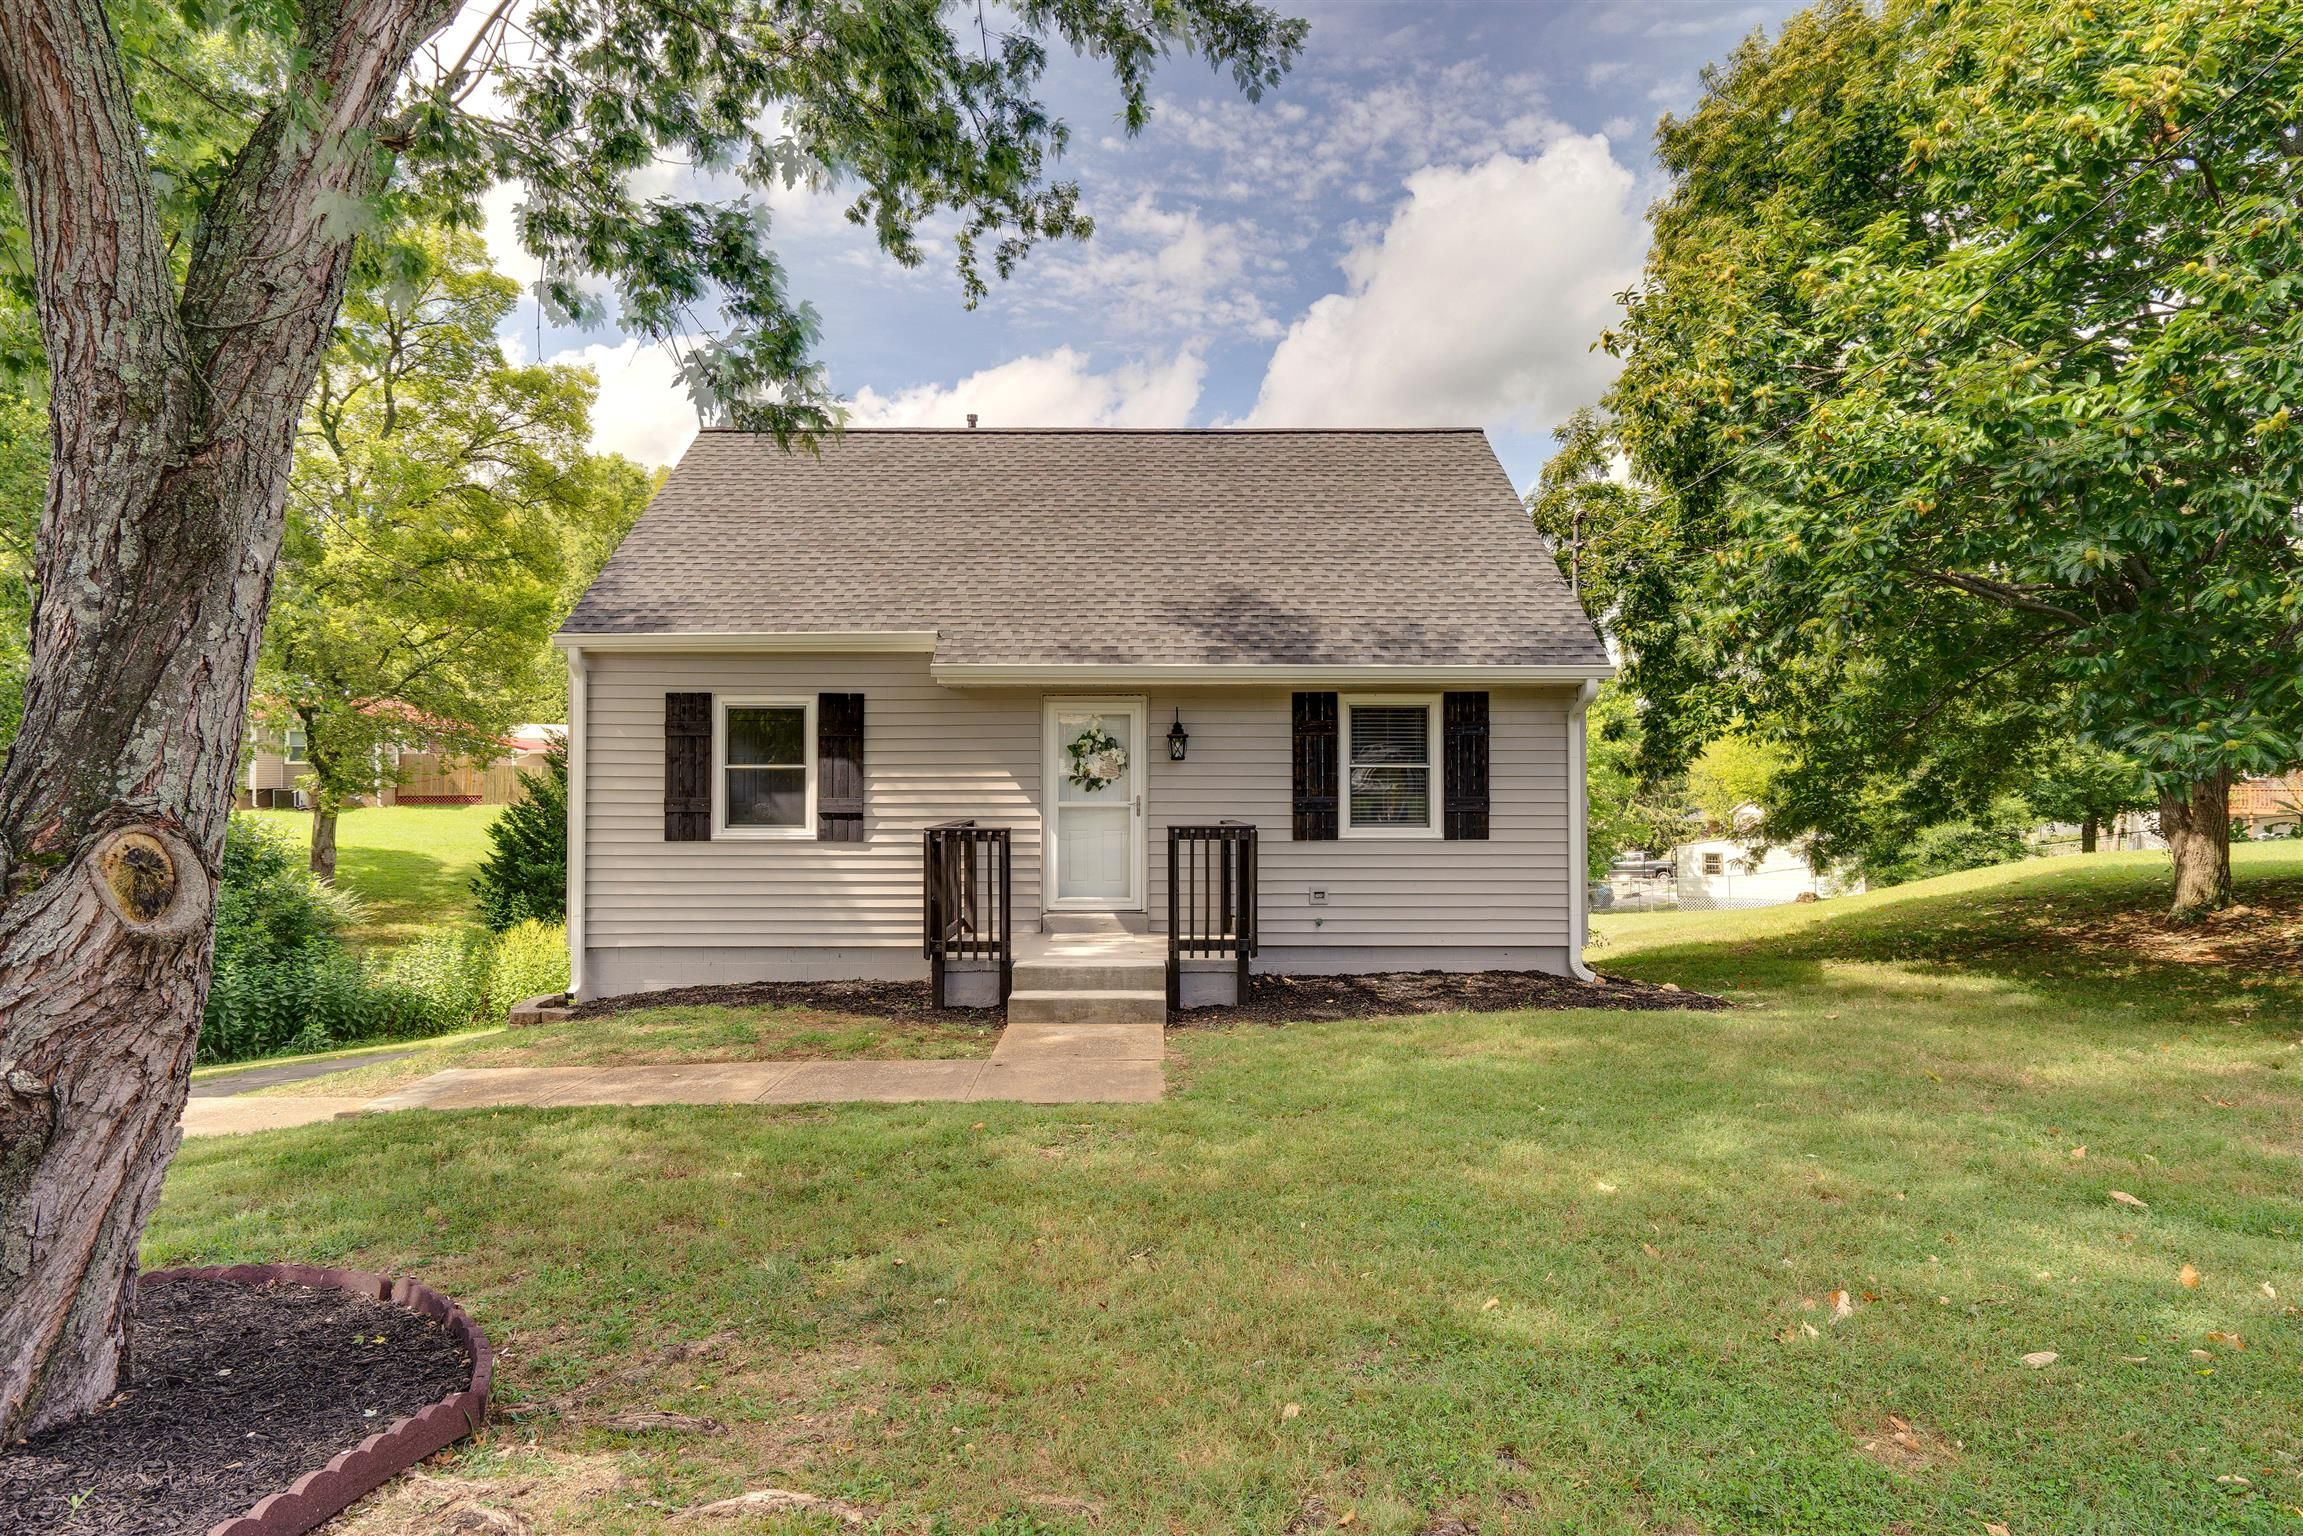 1930 Paul Dr Columbia Tn 38401 4 Bed 2 Bath 194 900 Very Nice Completely House Styles Home Columbia